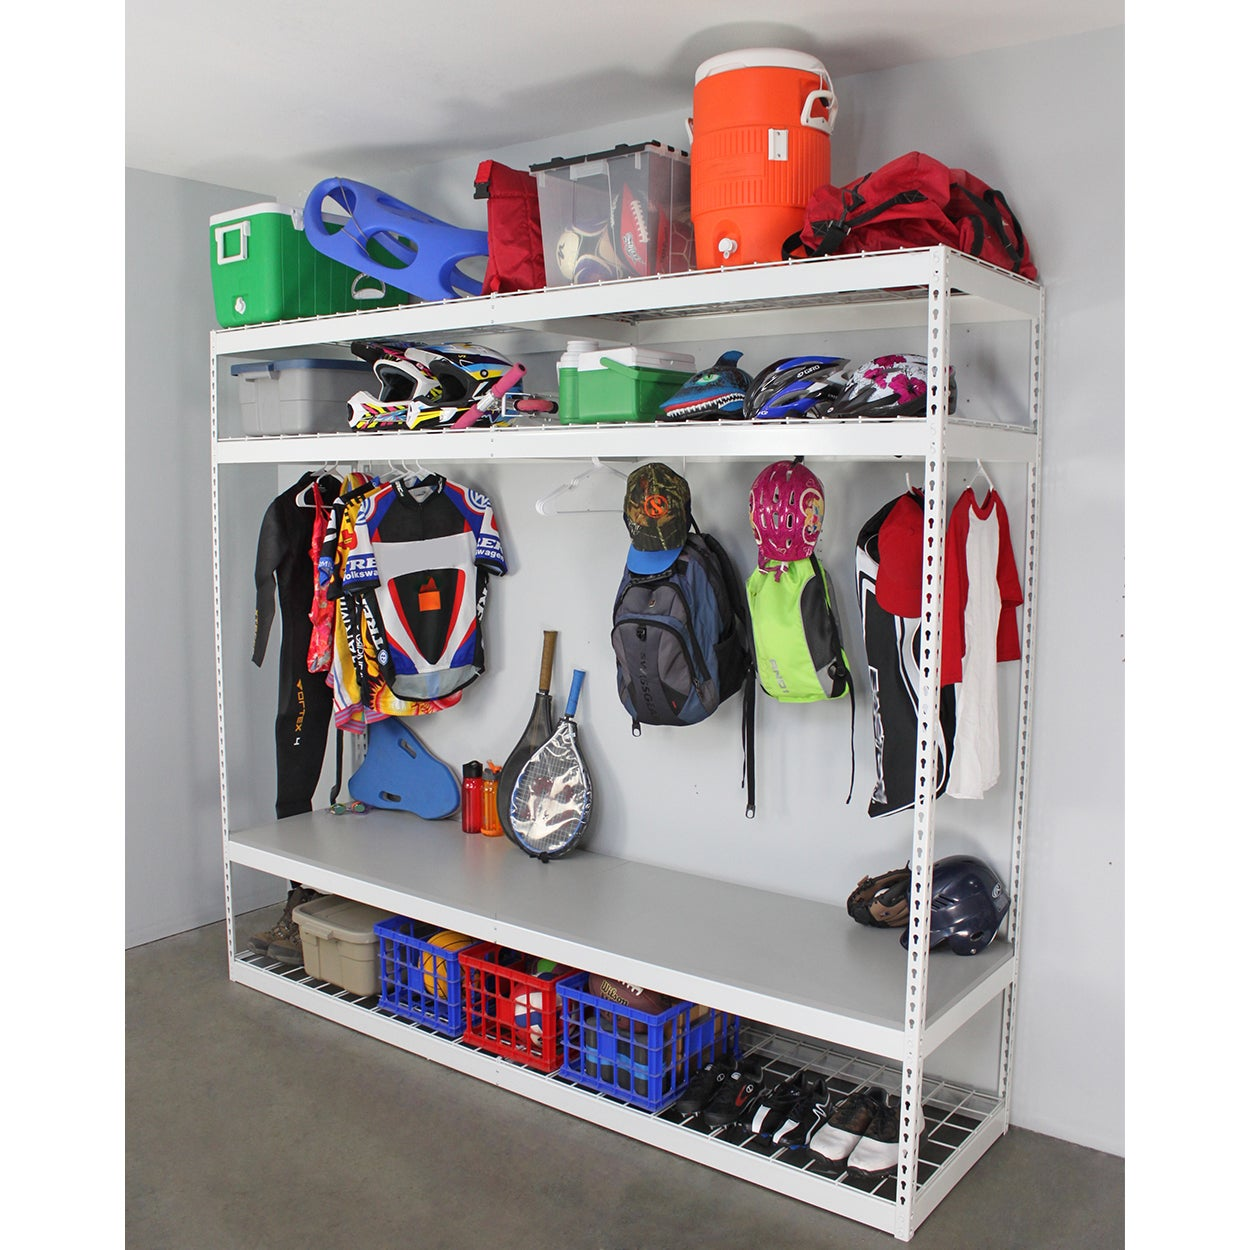 Saferacks Sports Equipment Organizer Free Shipping Today 14639262